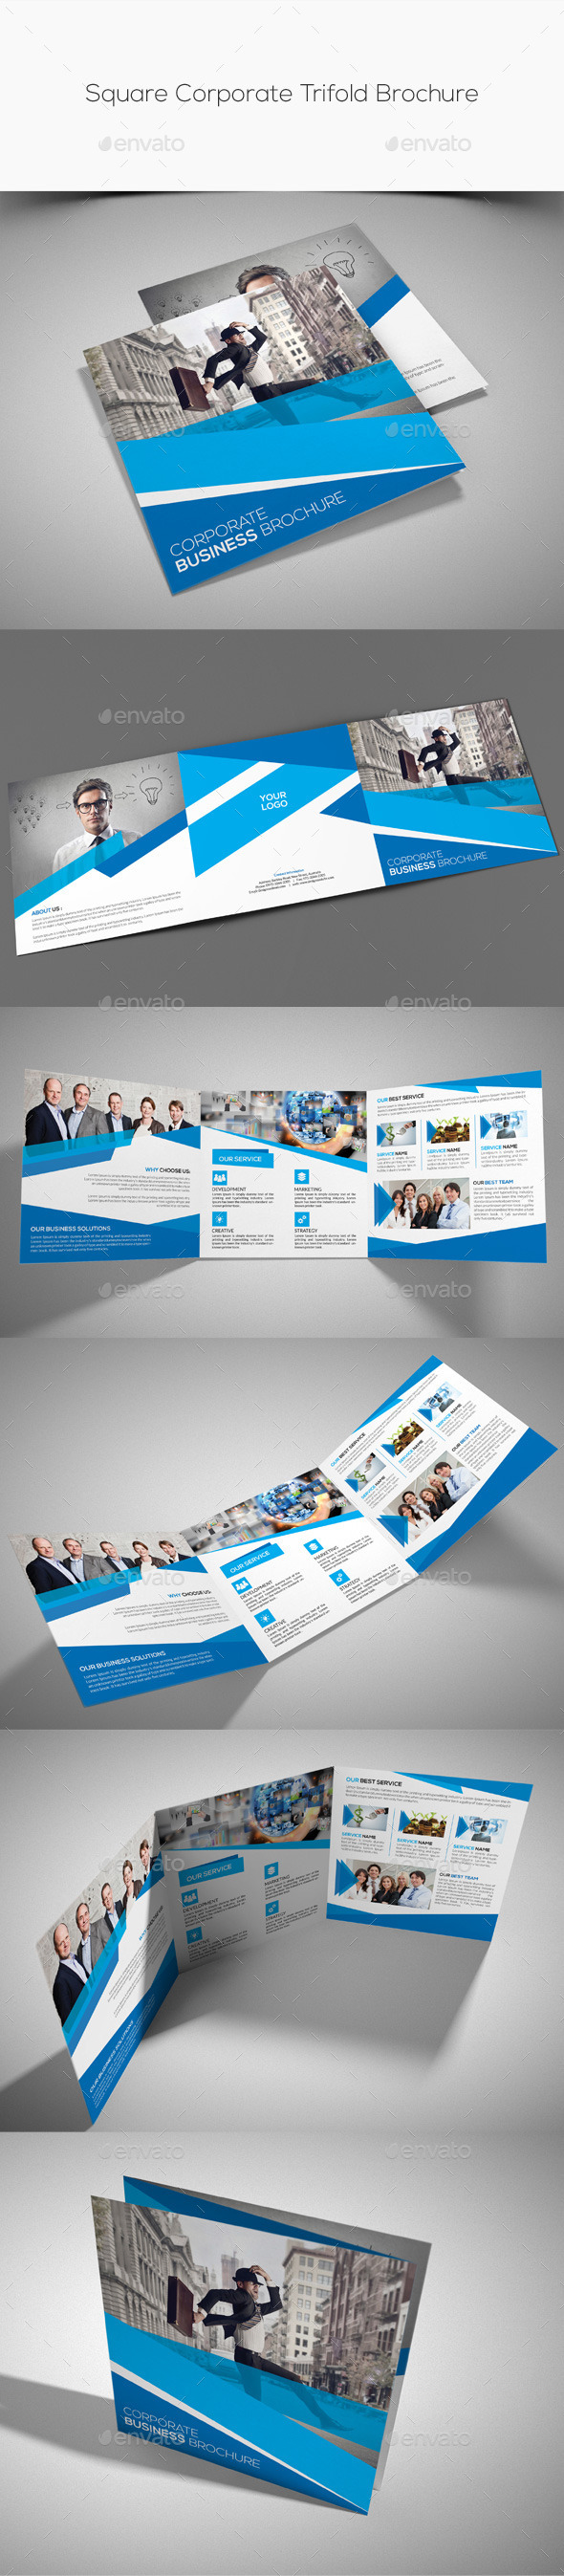 GraphicRiver Square Corporate Trifold Brochure 11212313